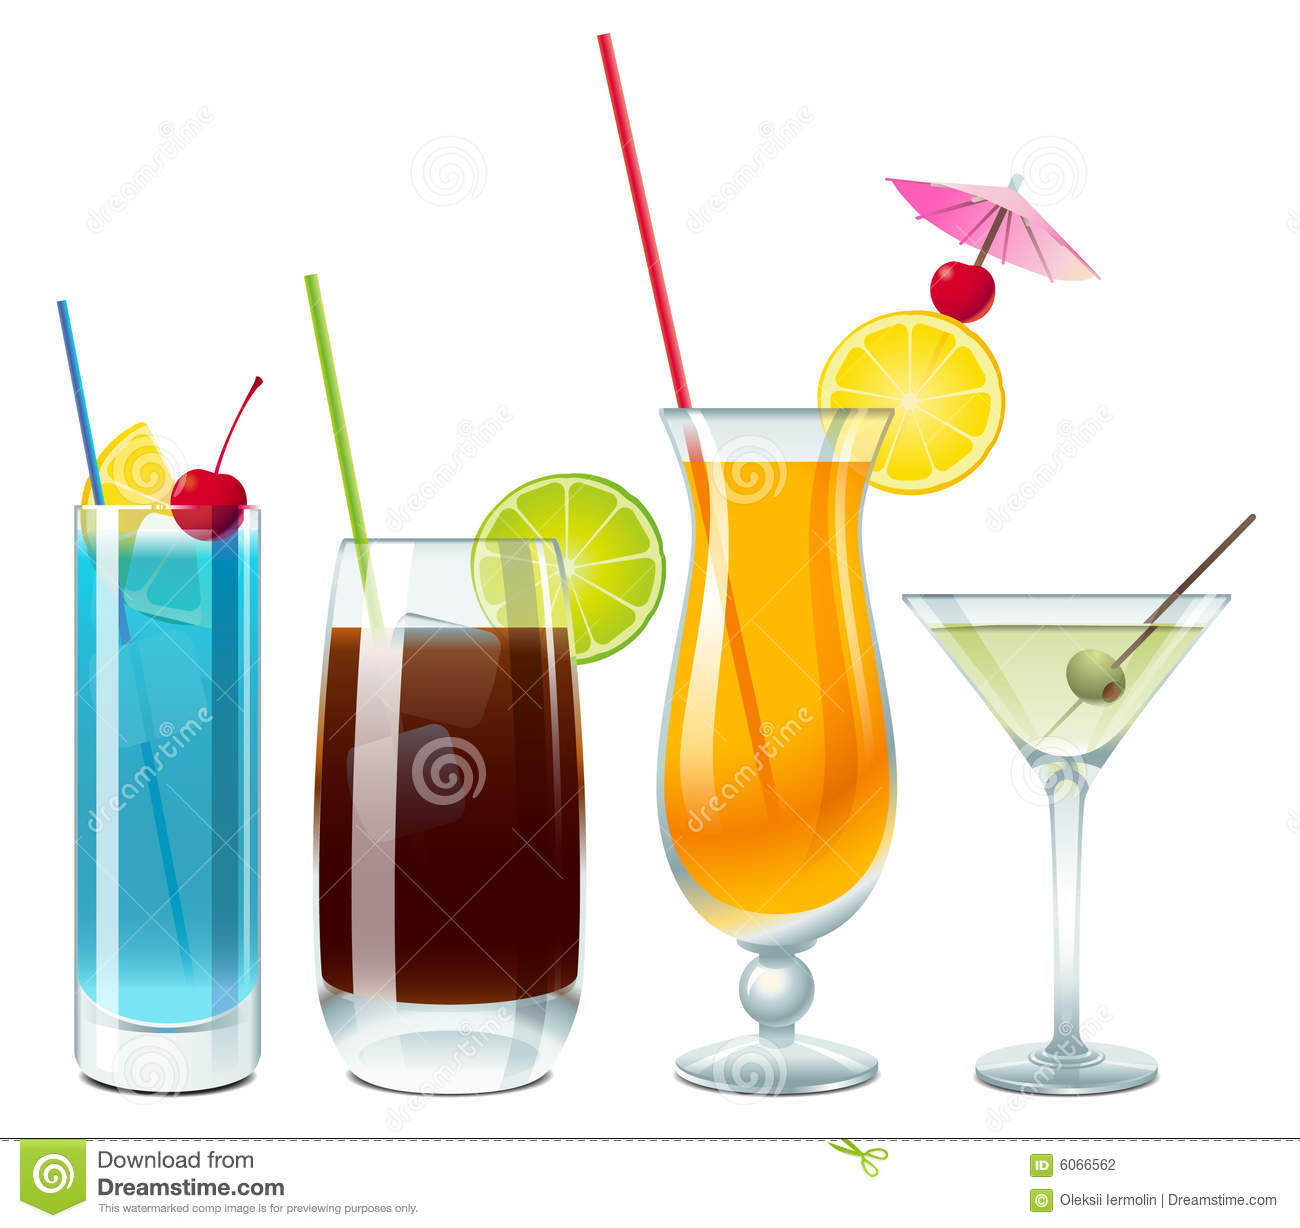 Getrnke bilder clipart png black and white Drunk Stock Illustrations – 7,317 Drunk Stock Illustrations ... png black and white